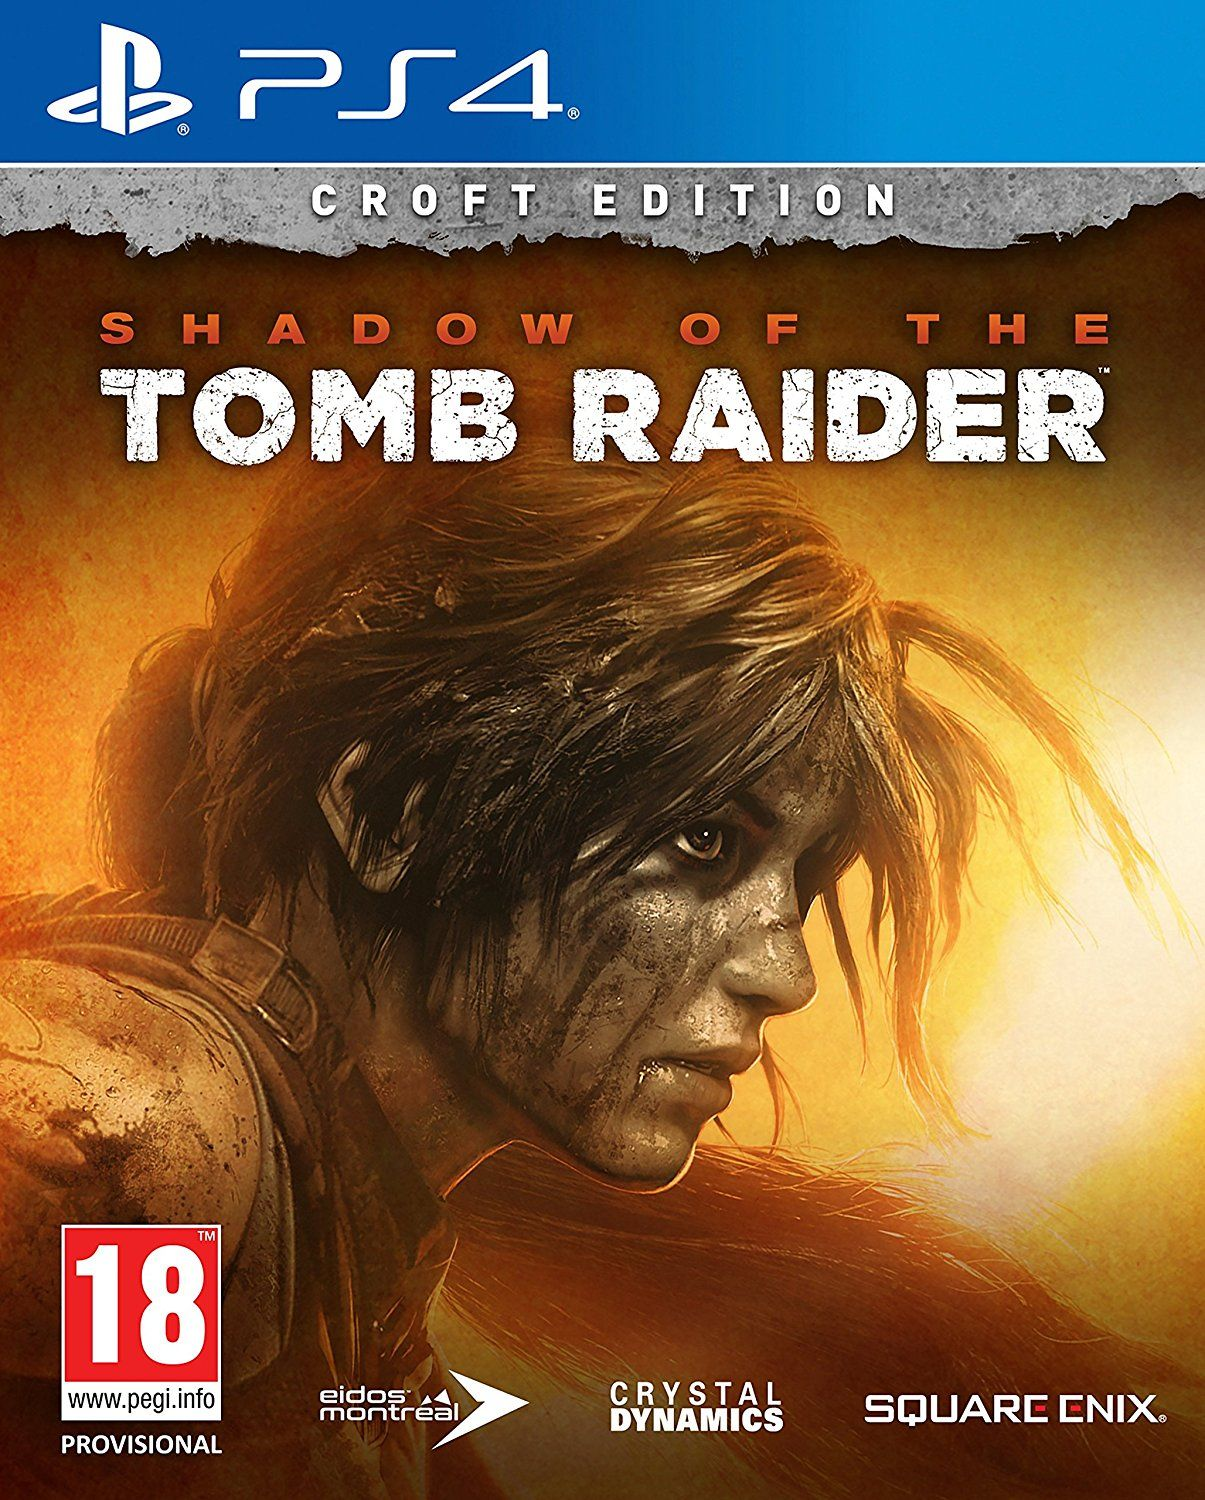 Shadow Of The Tomb Raider Croft Edition (PS4) - 1